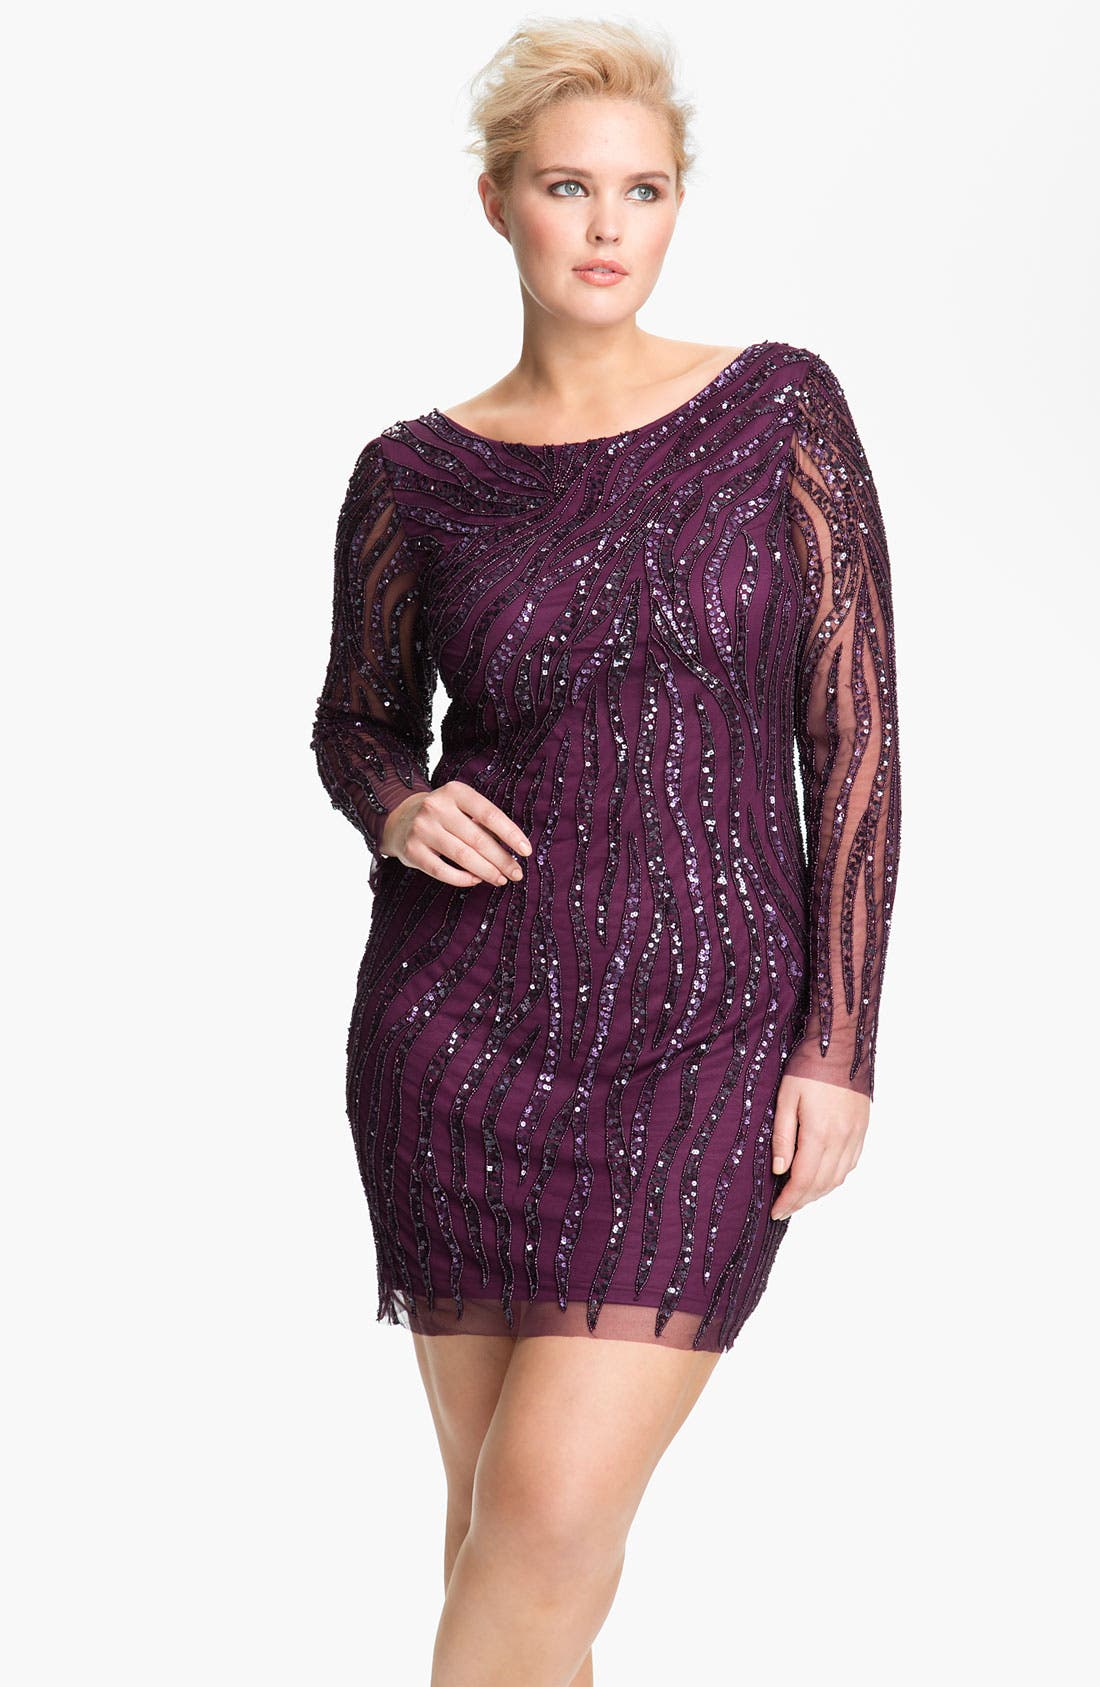 Alternate Image 1 Selected - Aidan Mattox Sequin Pattern Mesh Sheath Dress (Plus)